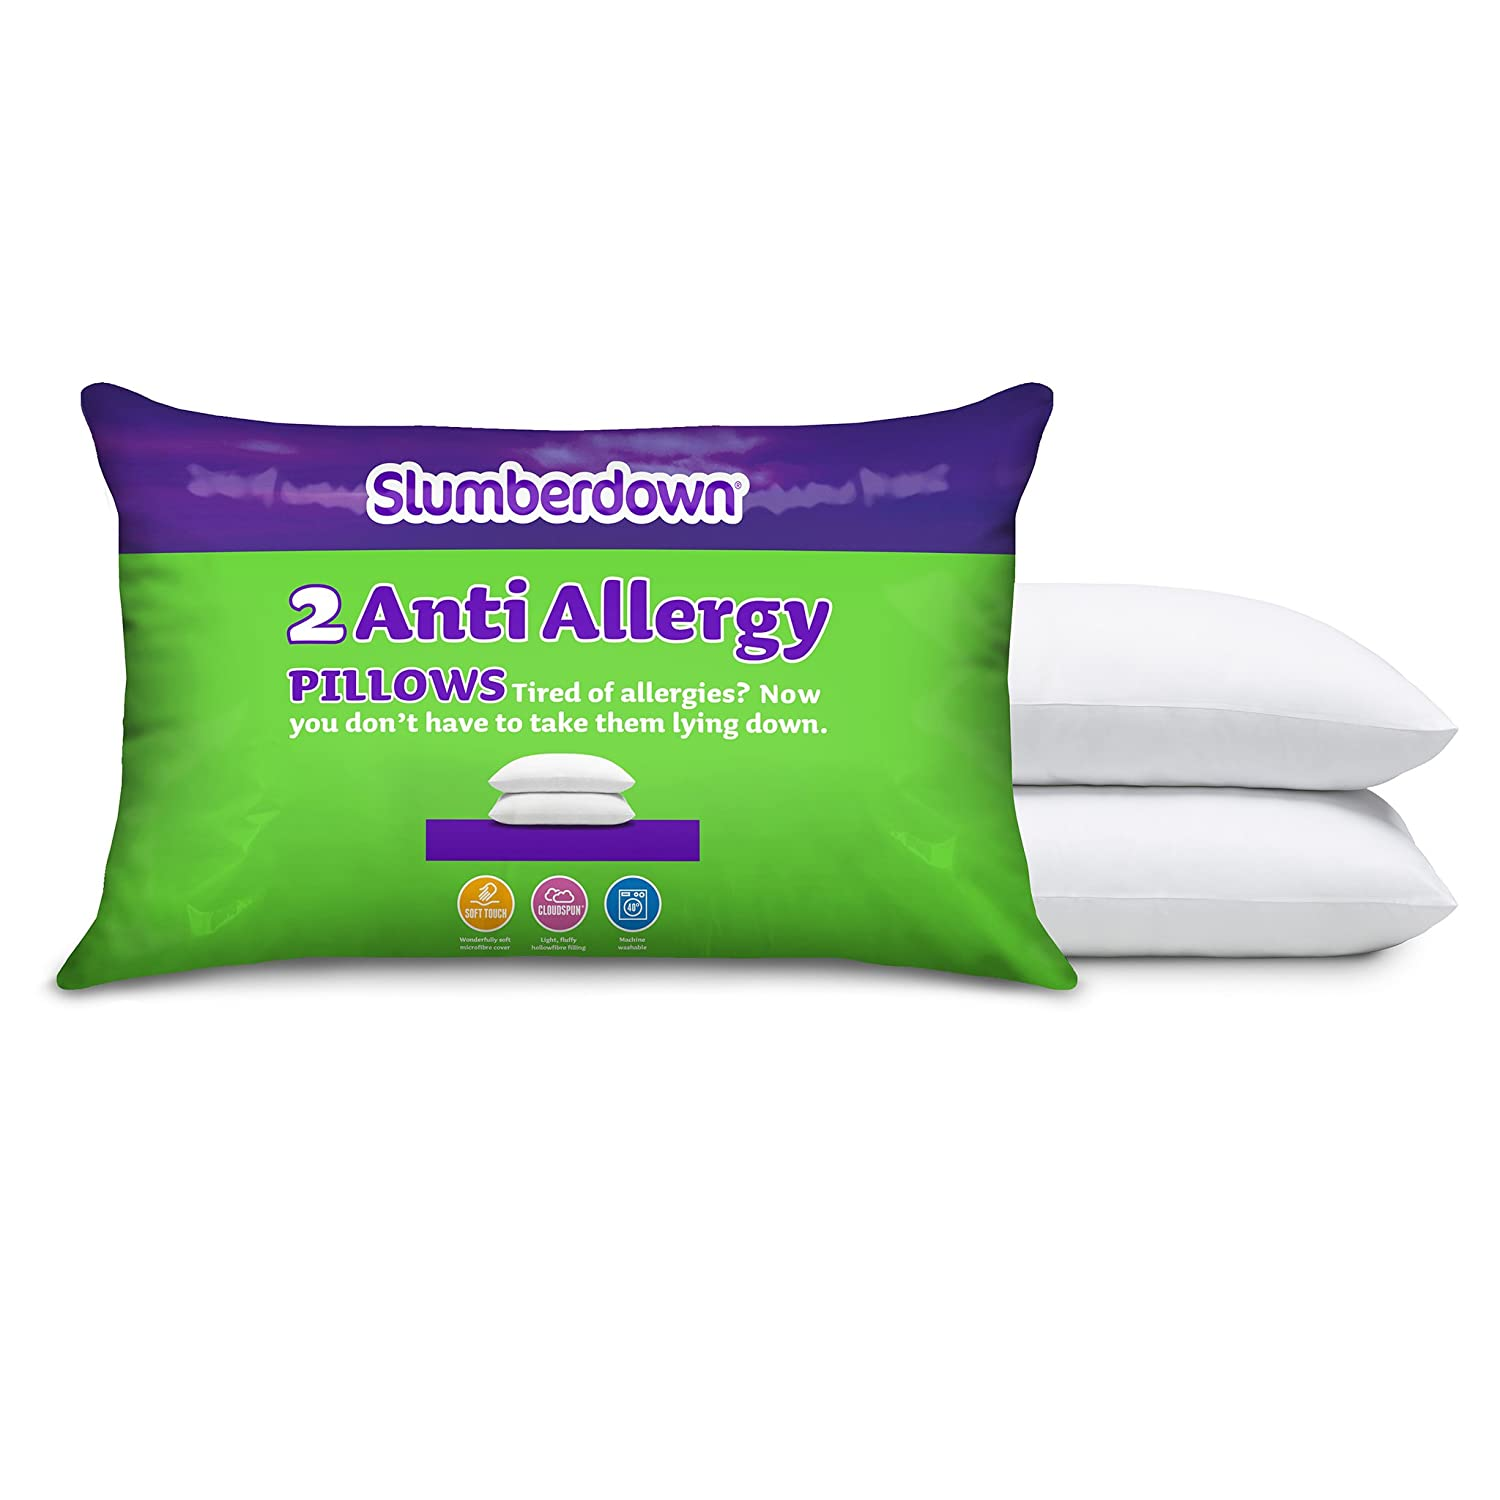 pillow sleeper silentnight people side sleep pillows deep pack sleepy